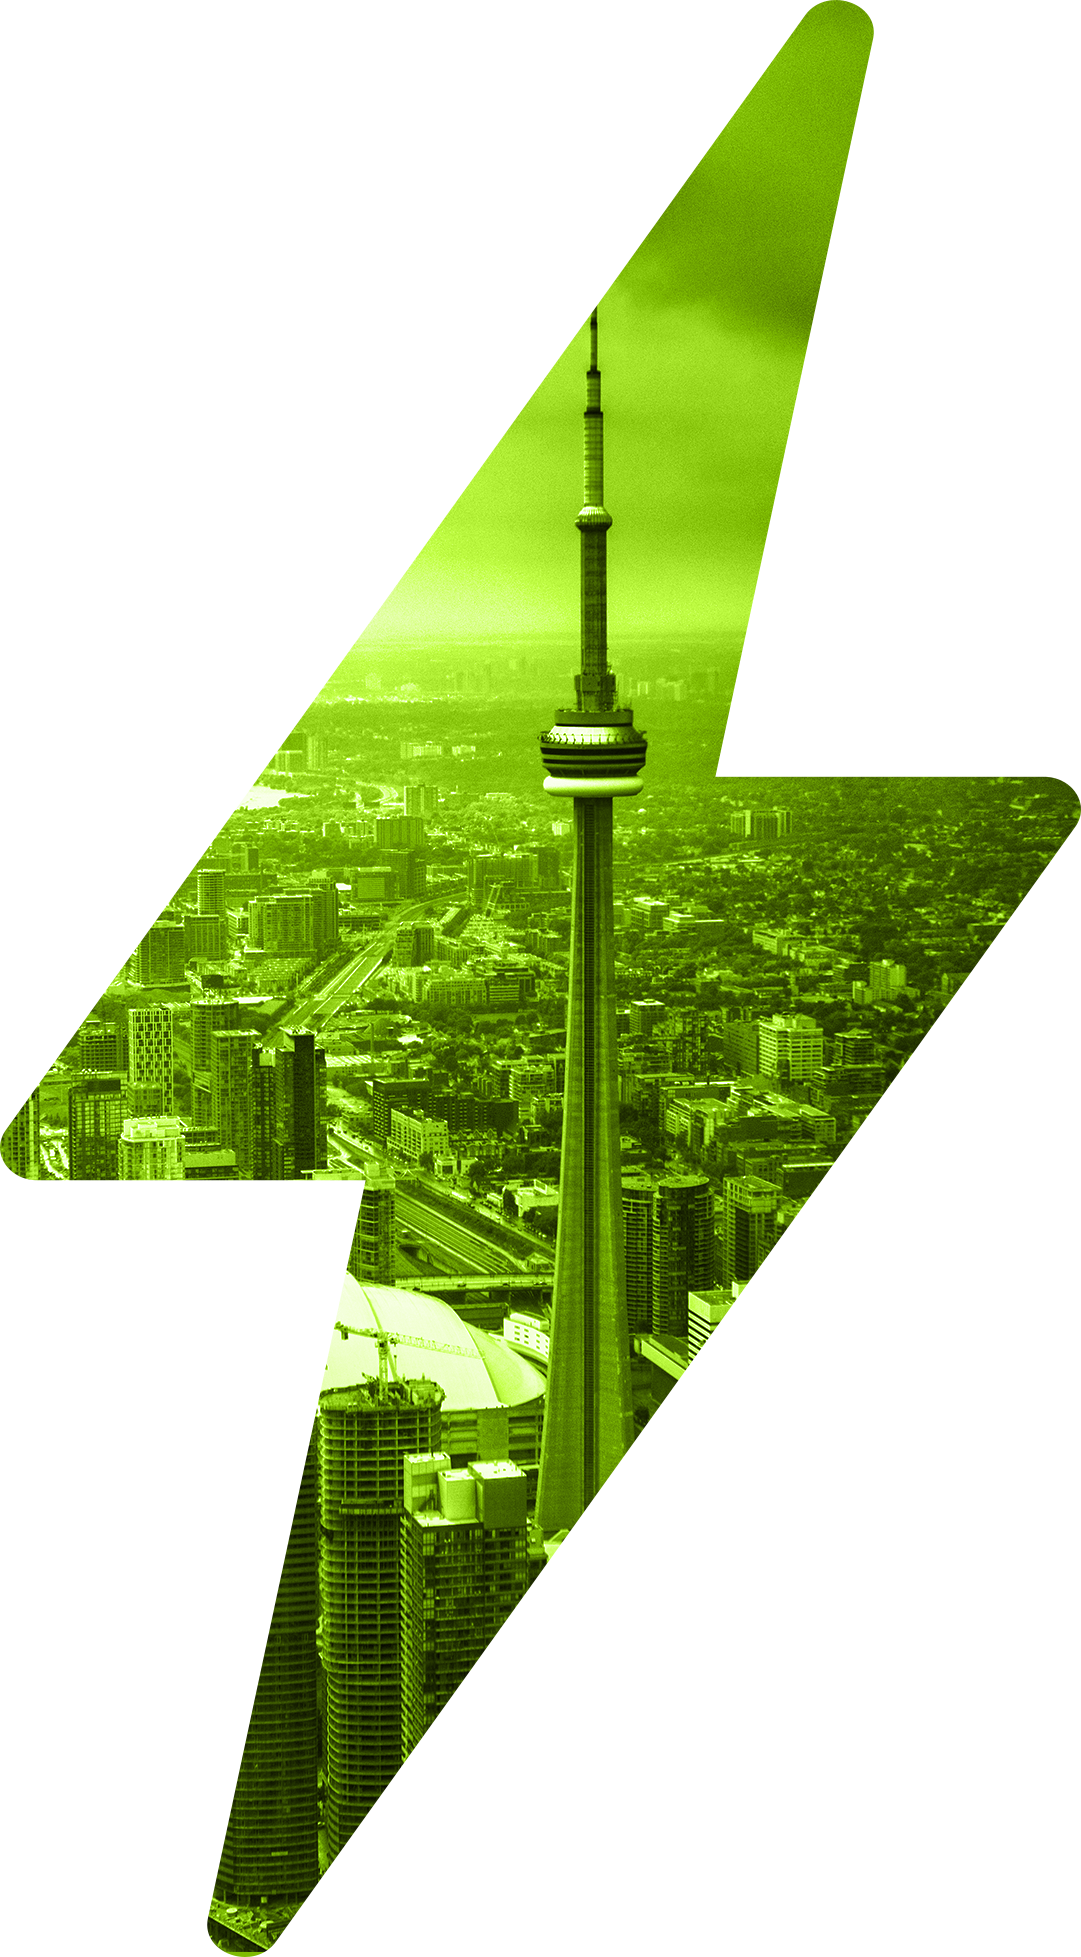 Large green lightning bolt with inset of Toronto, Ontario cityscape with CN Tower